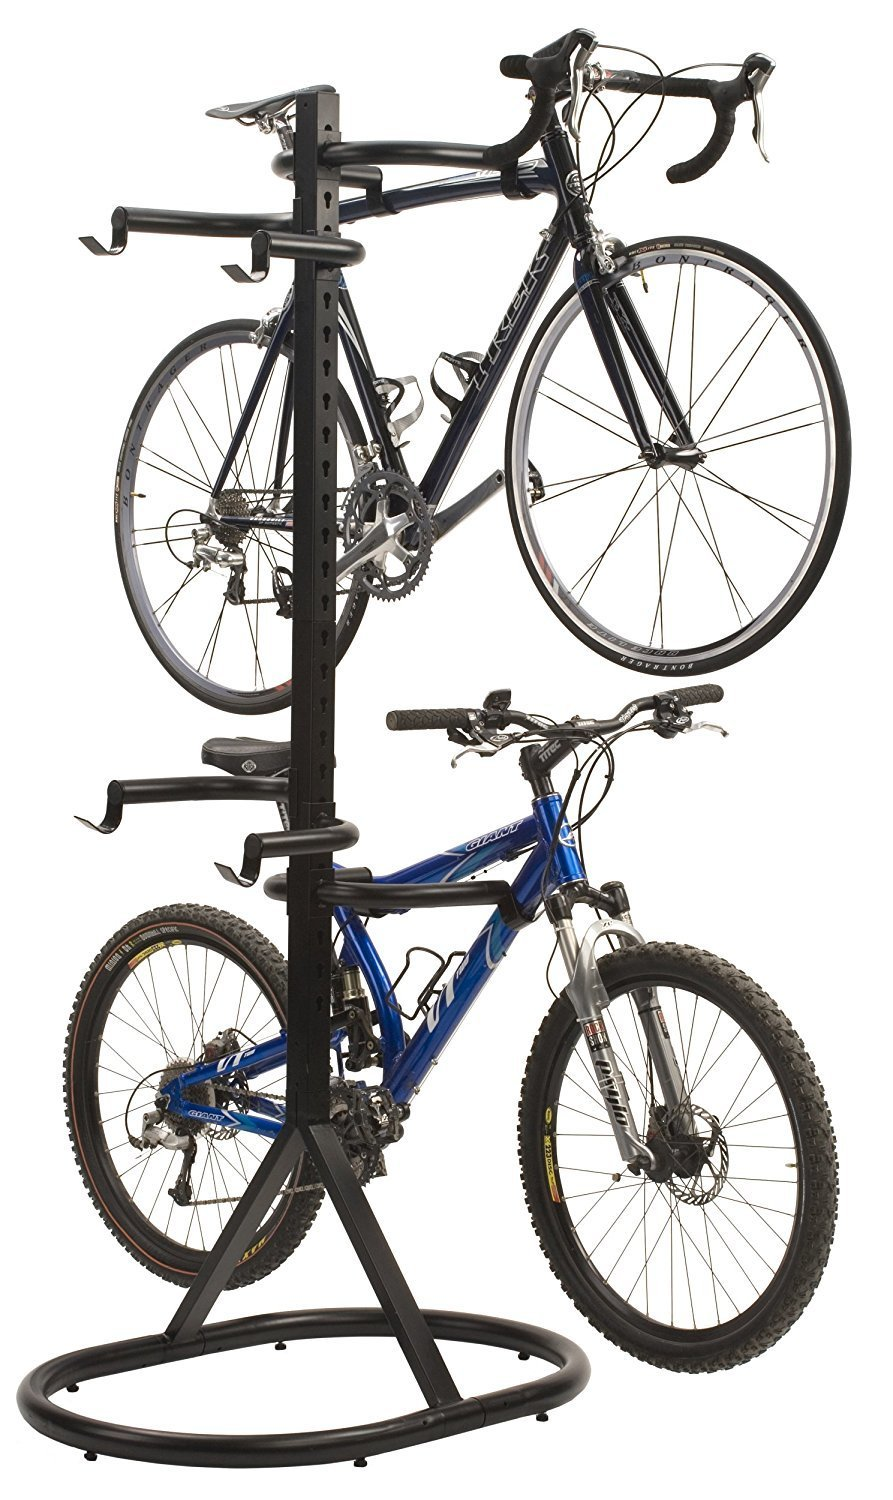 CyclingDeal 4 Bikes Hanger Parking Rack Floor Freestanding Stand by CyclingDeal (Image #3)